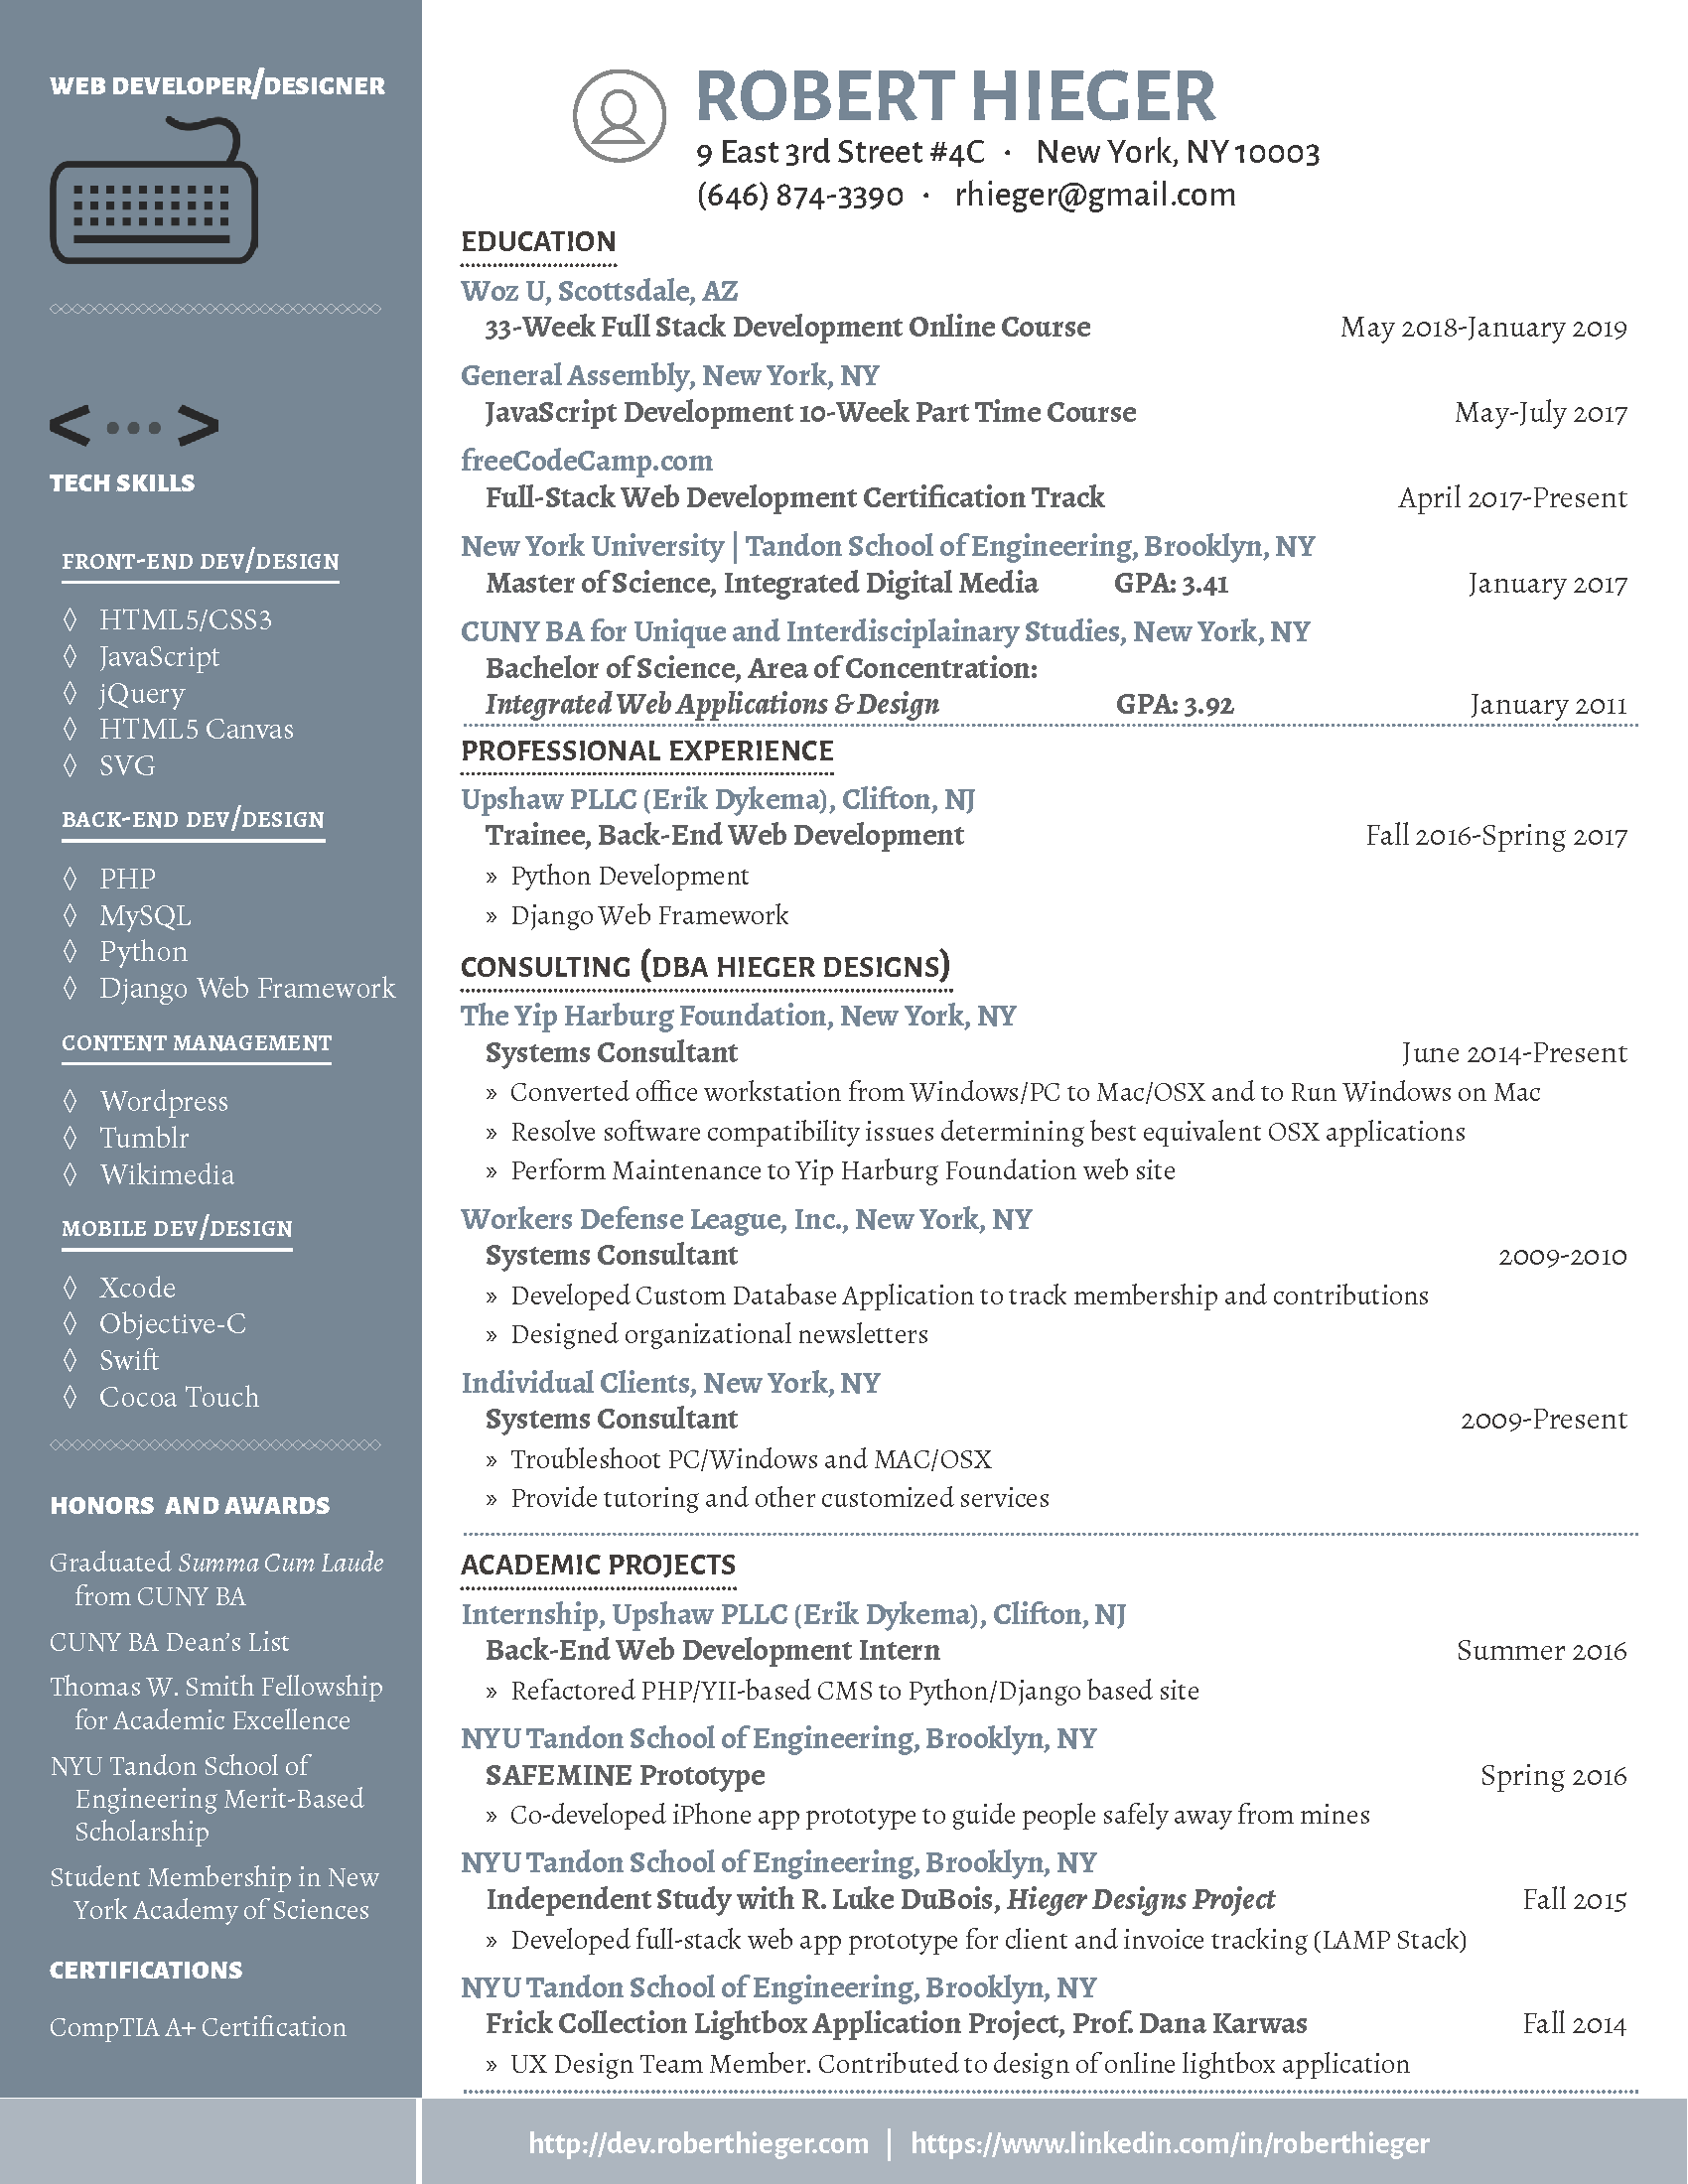 Image of Resume